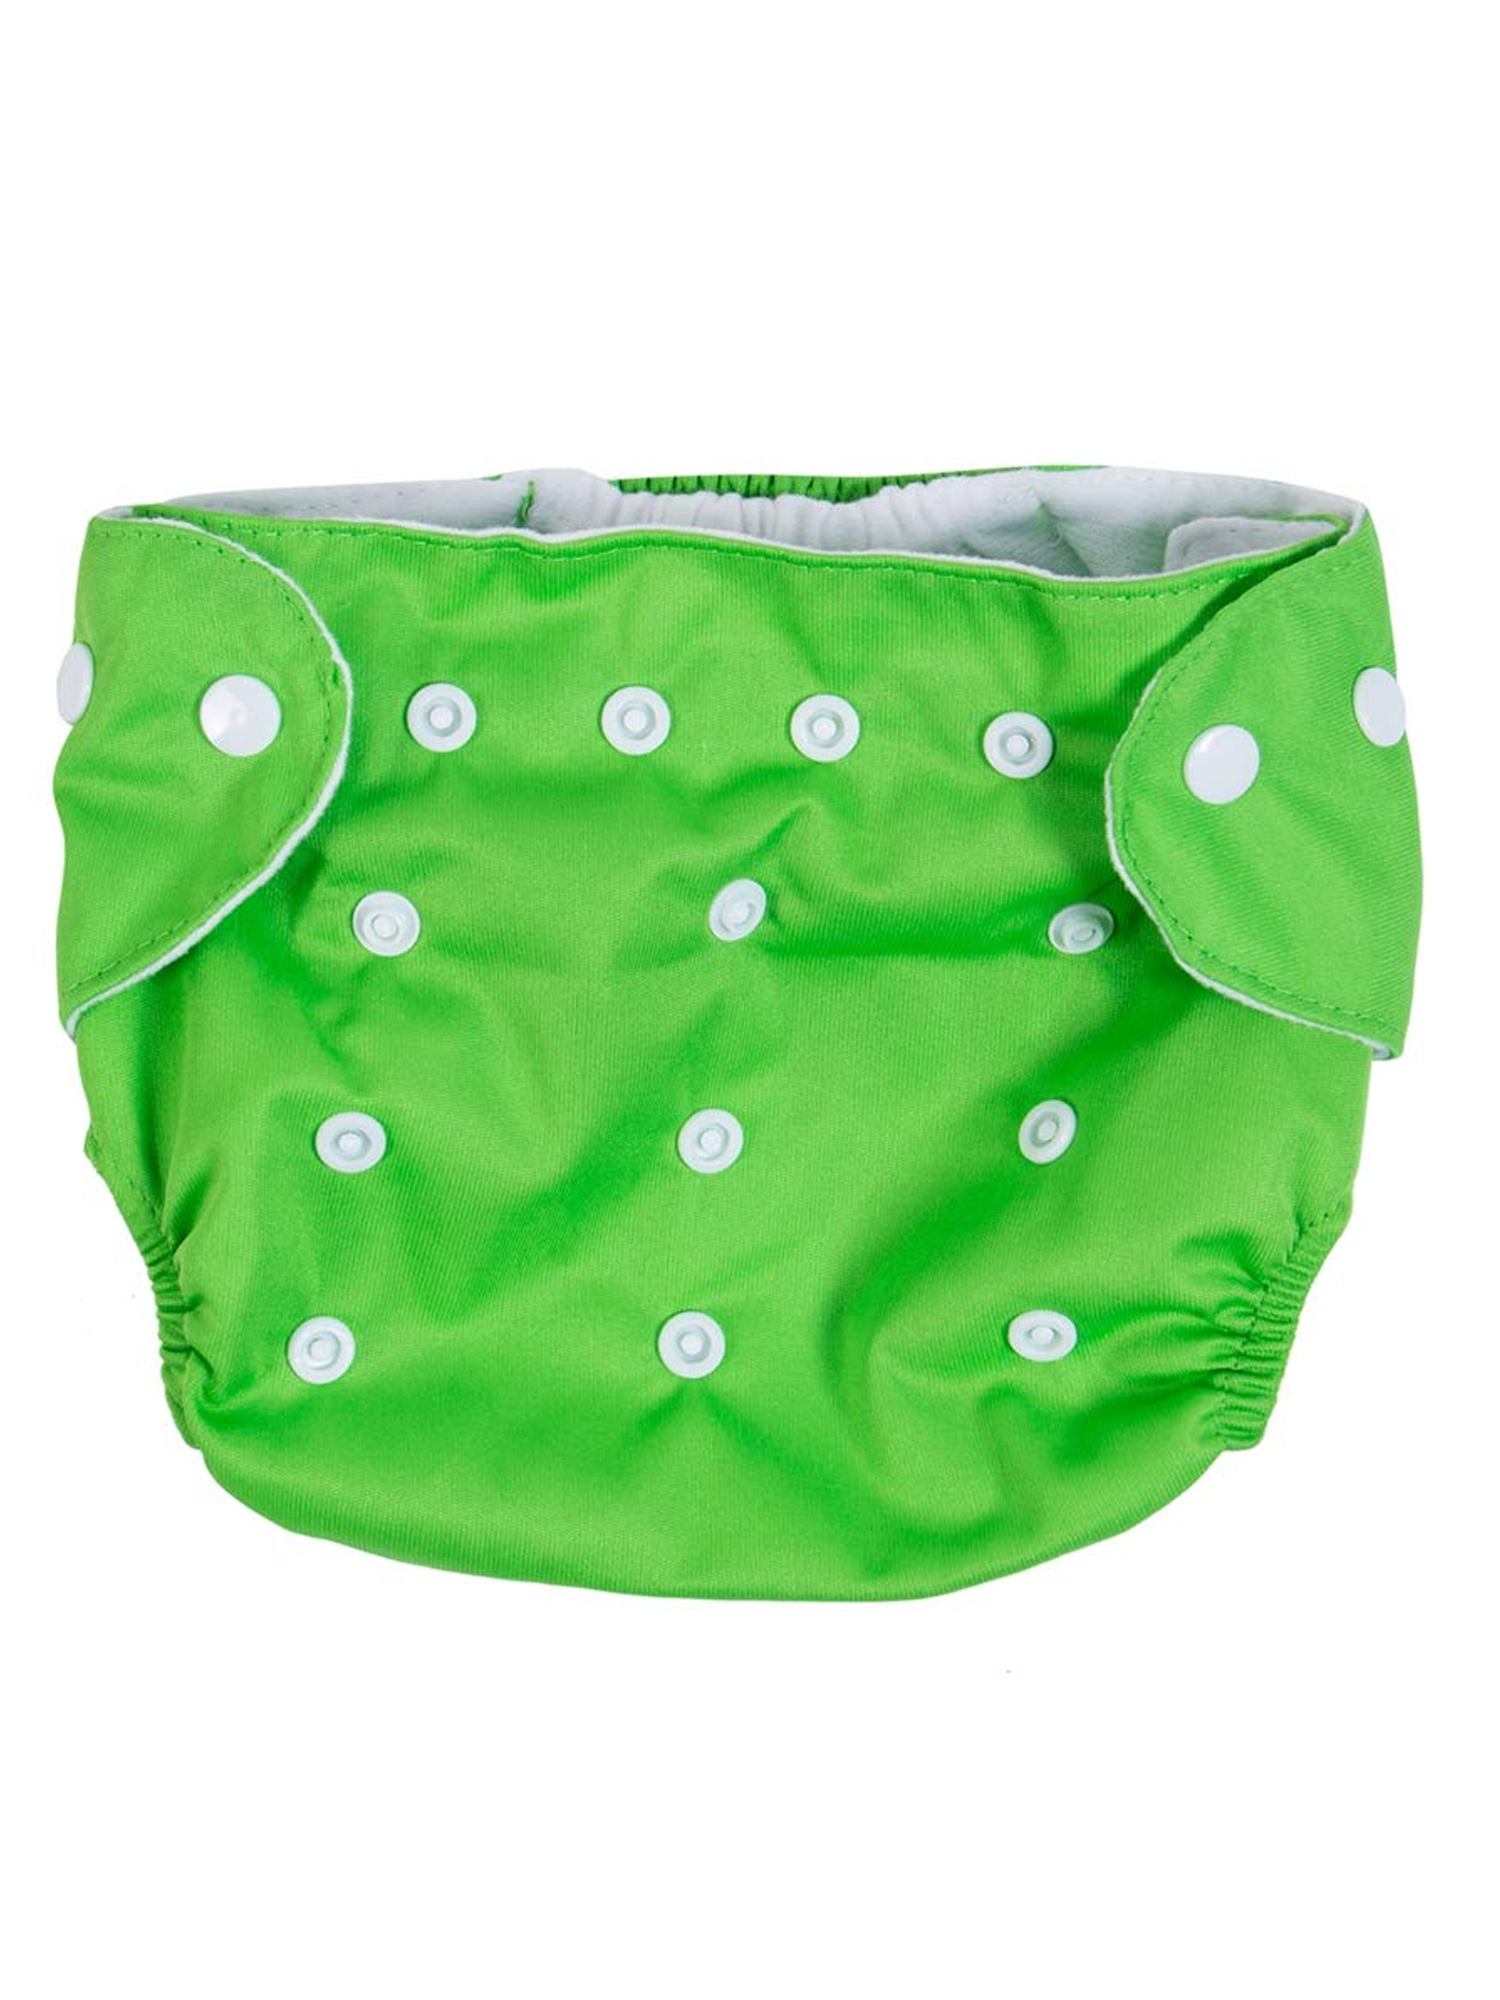 Baby Infant Nappy Cloth Diapers Soft Covers Washable Size Adjustable